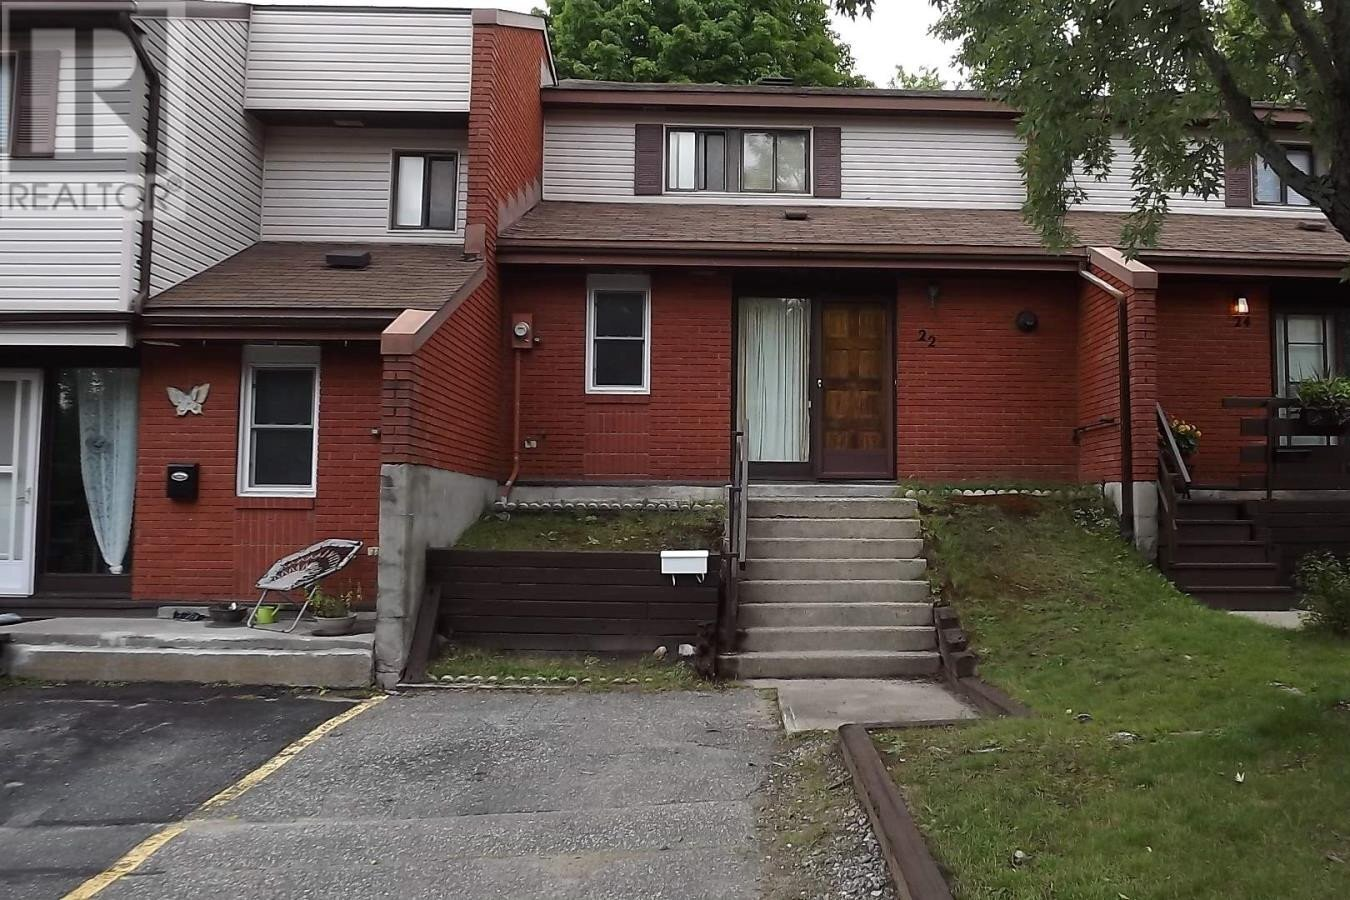 Townhouse for sale at 22 Capital Pl Elliot Lake Ontario - MLS: SM129688